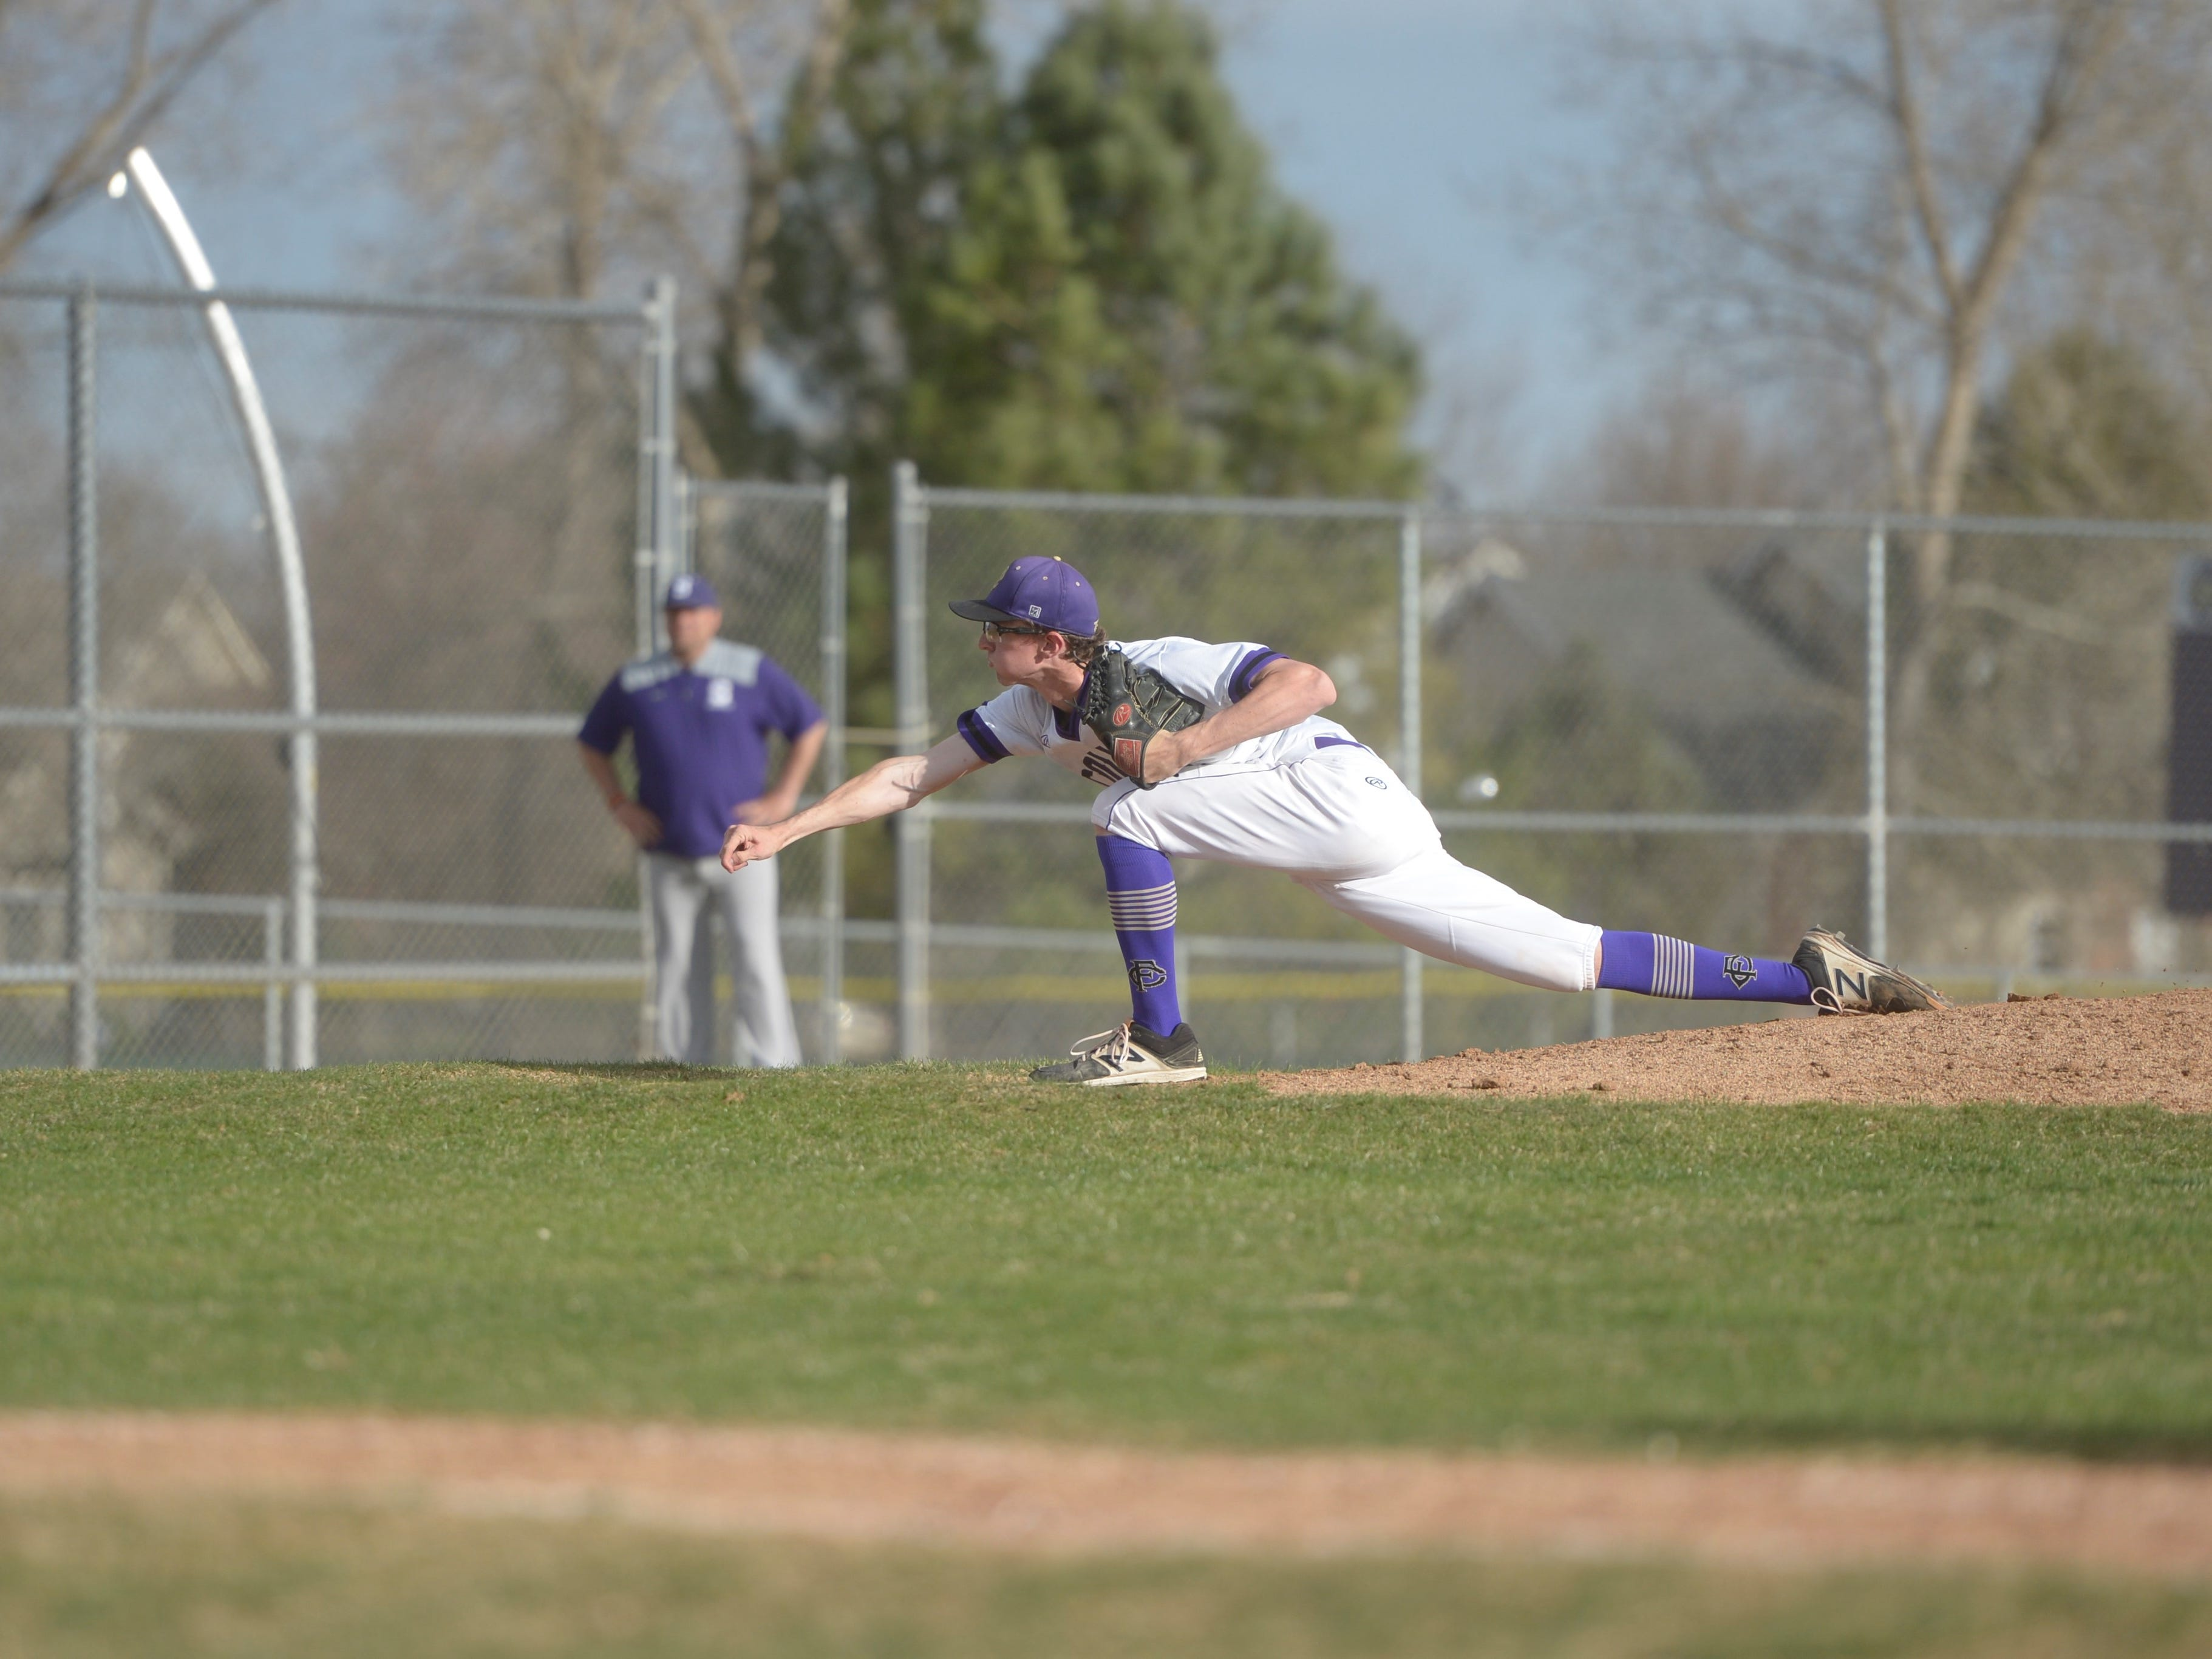 Fort Collins High School sidearm pitcher Cooper Brotherton pitches during a game against Denver South on Monday, April 8, 2019. The Lambkins won 13-3 to move to 10-0 on the season.